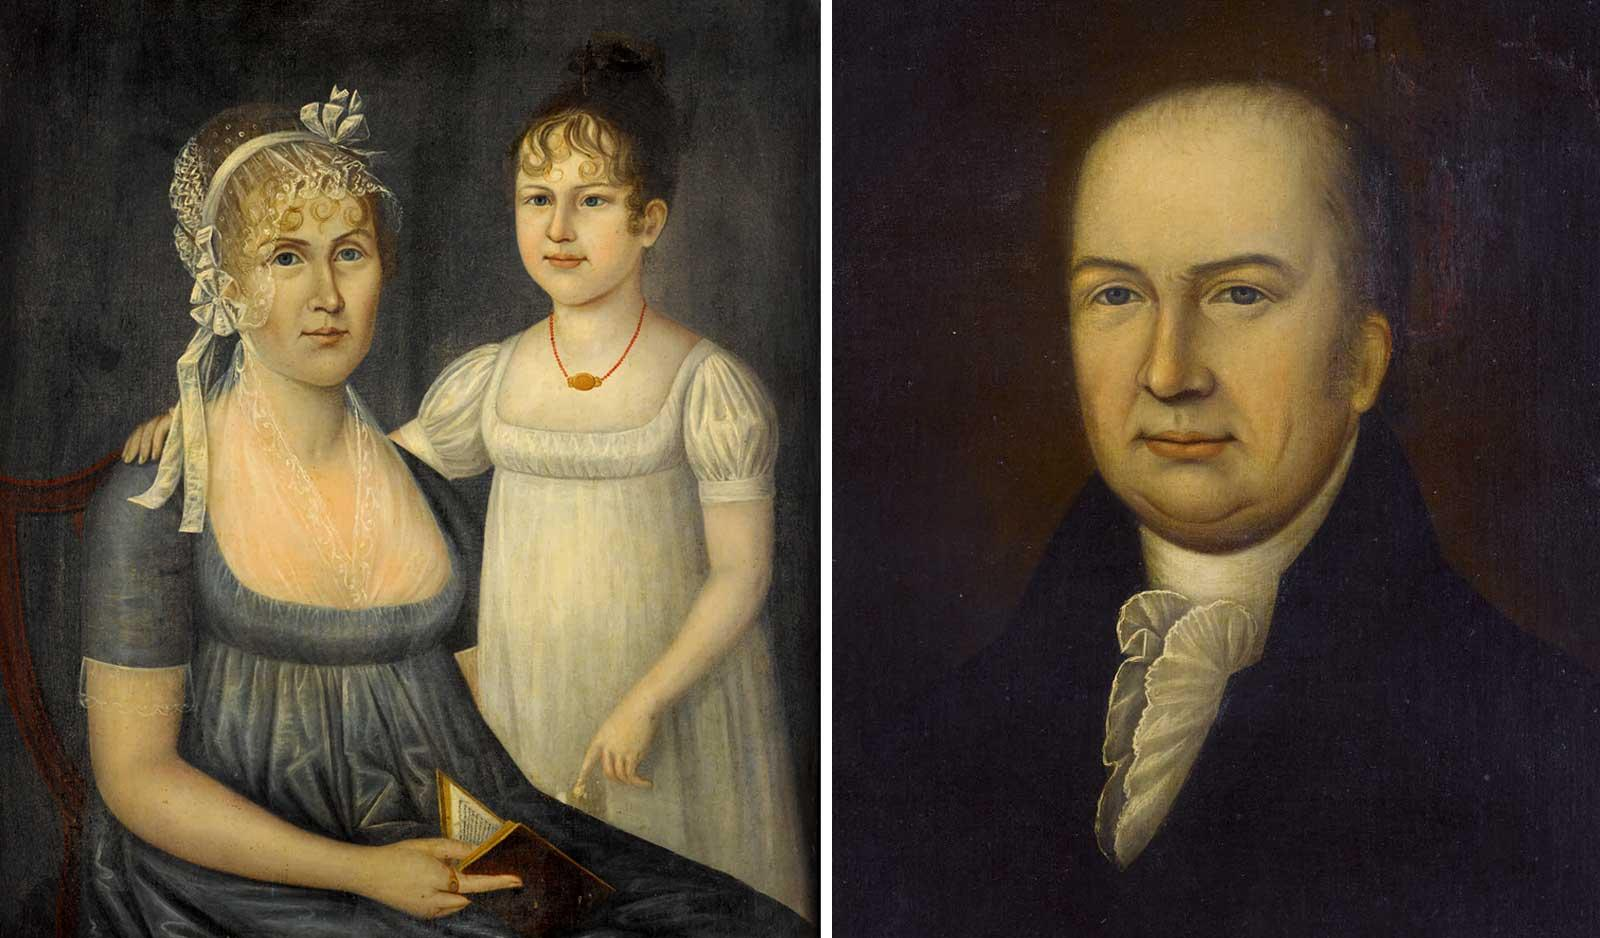 Dr. Andrew Aitkin (1757-1809), Mrs. Andrew Aitkin (Elizabeth Aiken, 1761-1811) and her daughter, Eliza Aitkin (1798-1885),